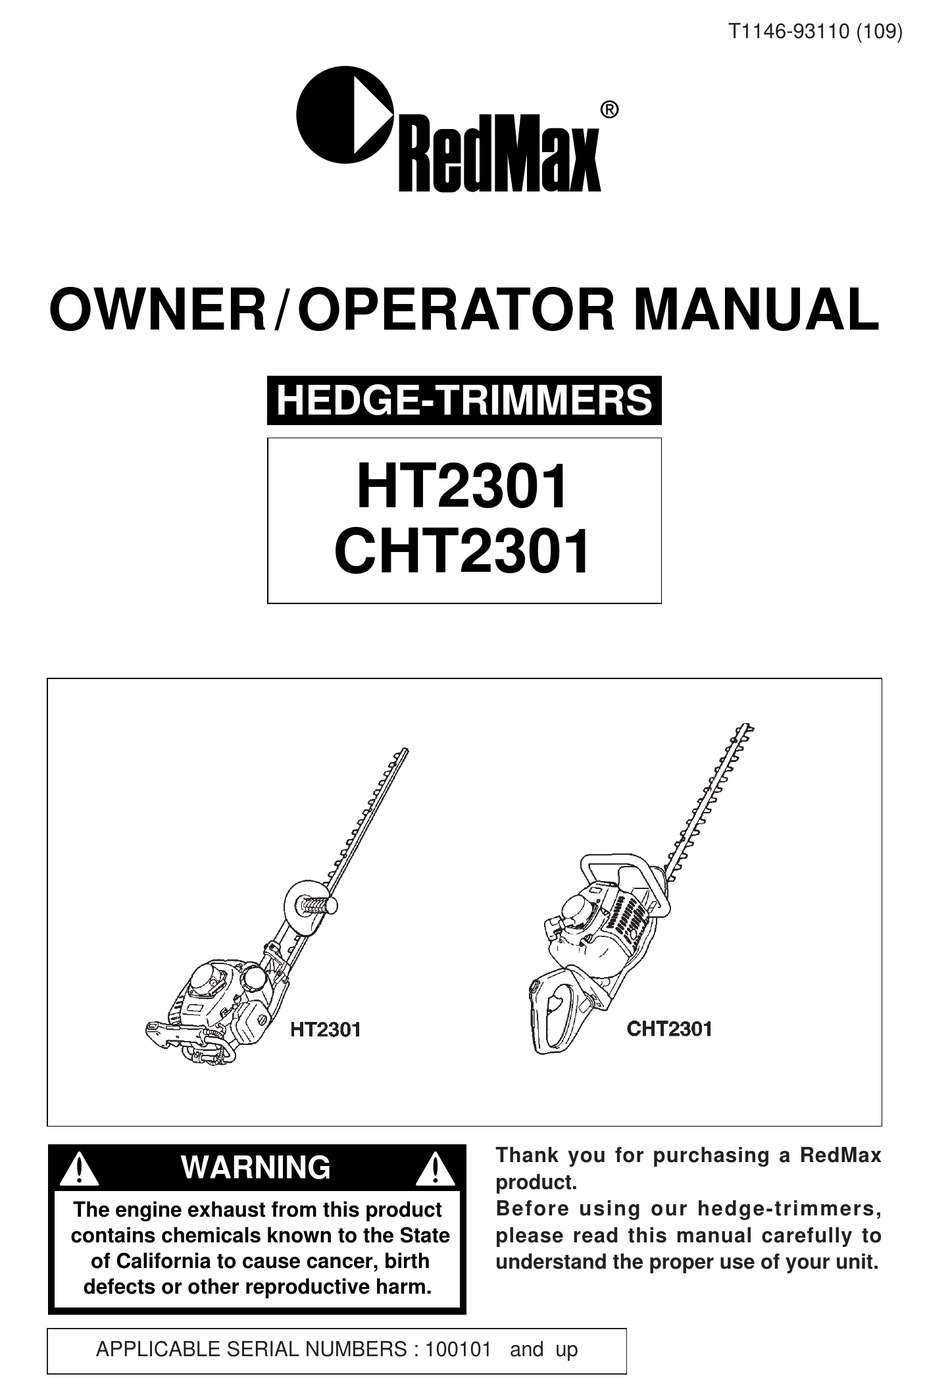 REDMAX CHT2301 OWNER'S/OPERATOR'S MANUAL Pdf Download